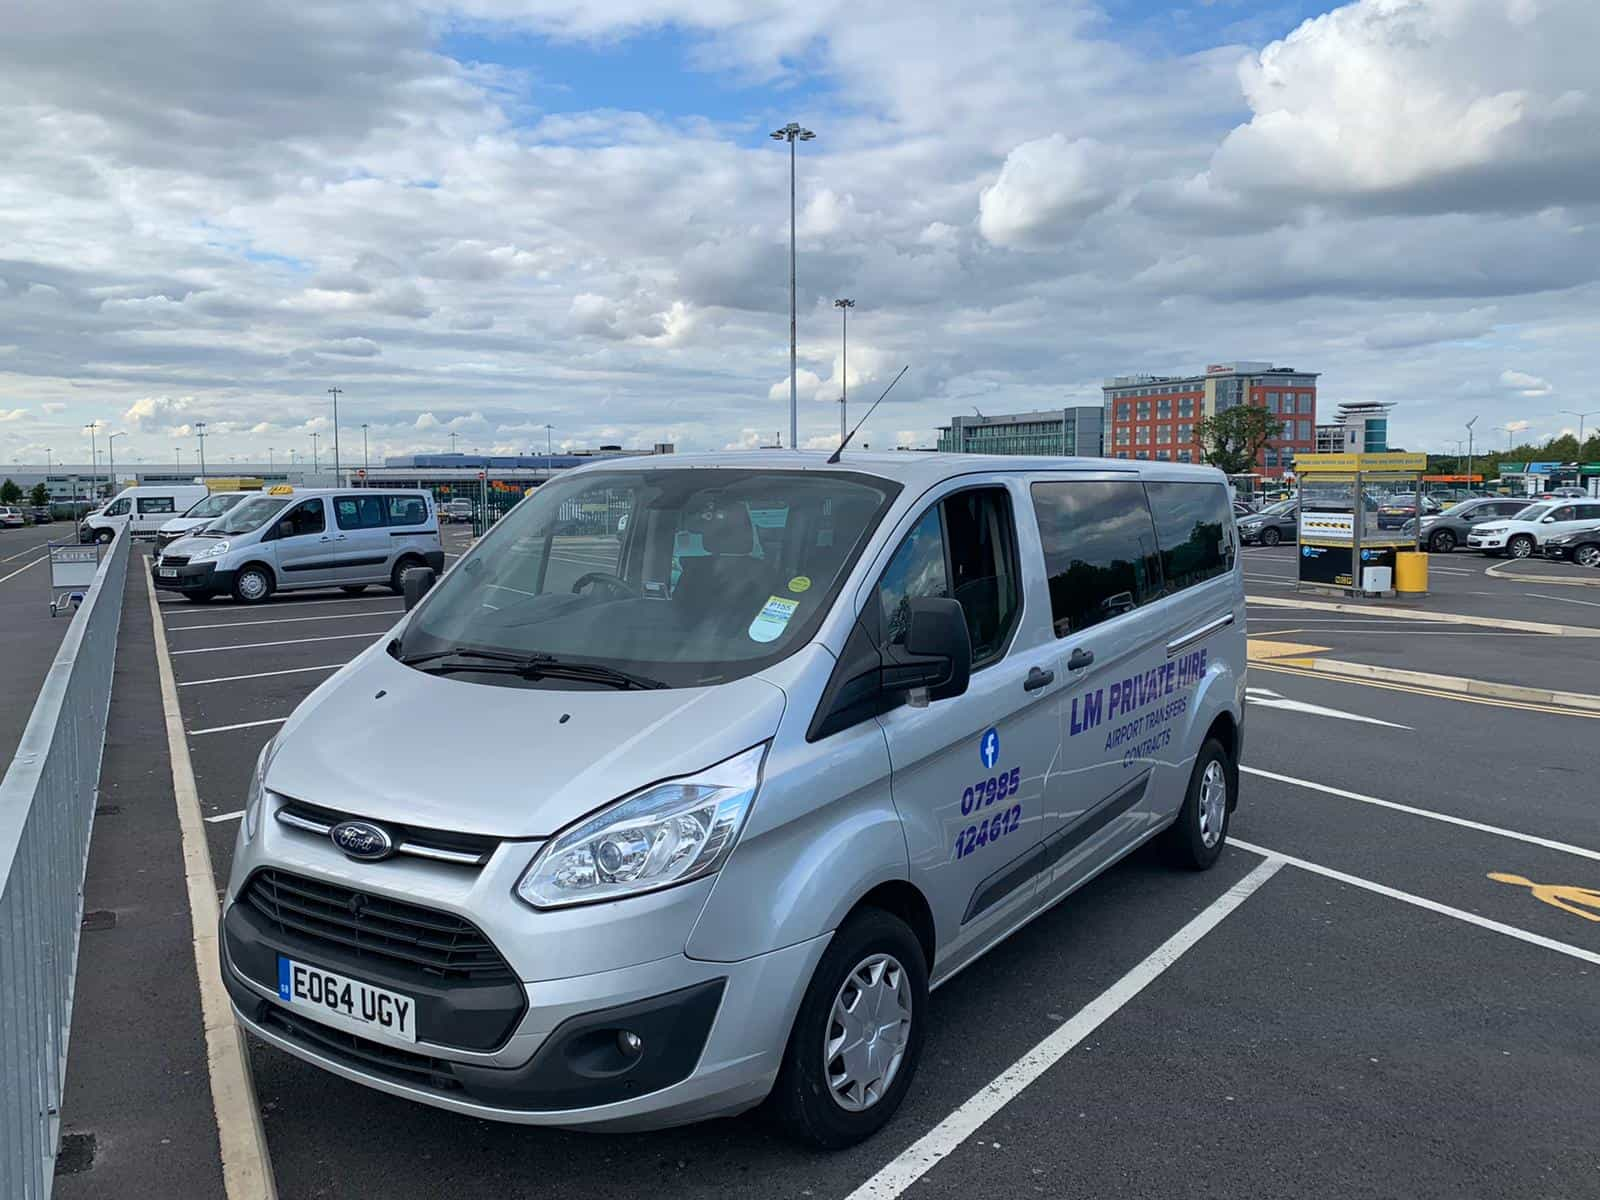 LM Private Hire Minibus. Pershore Taxi for Airport journeys